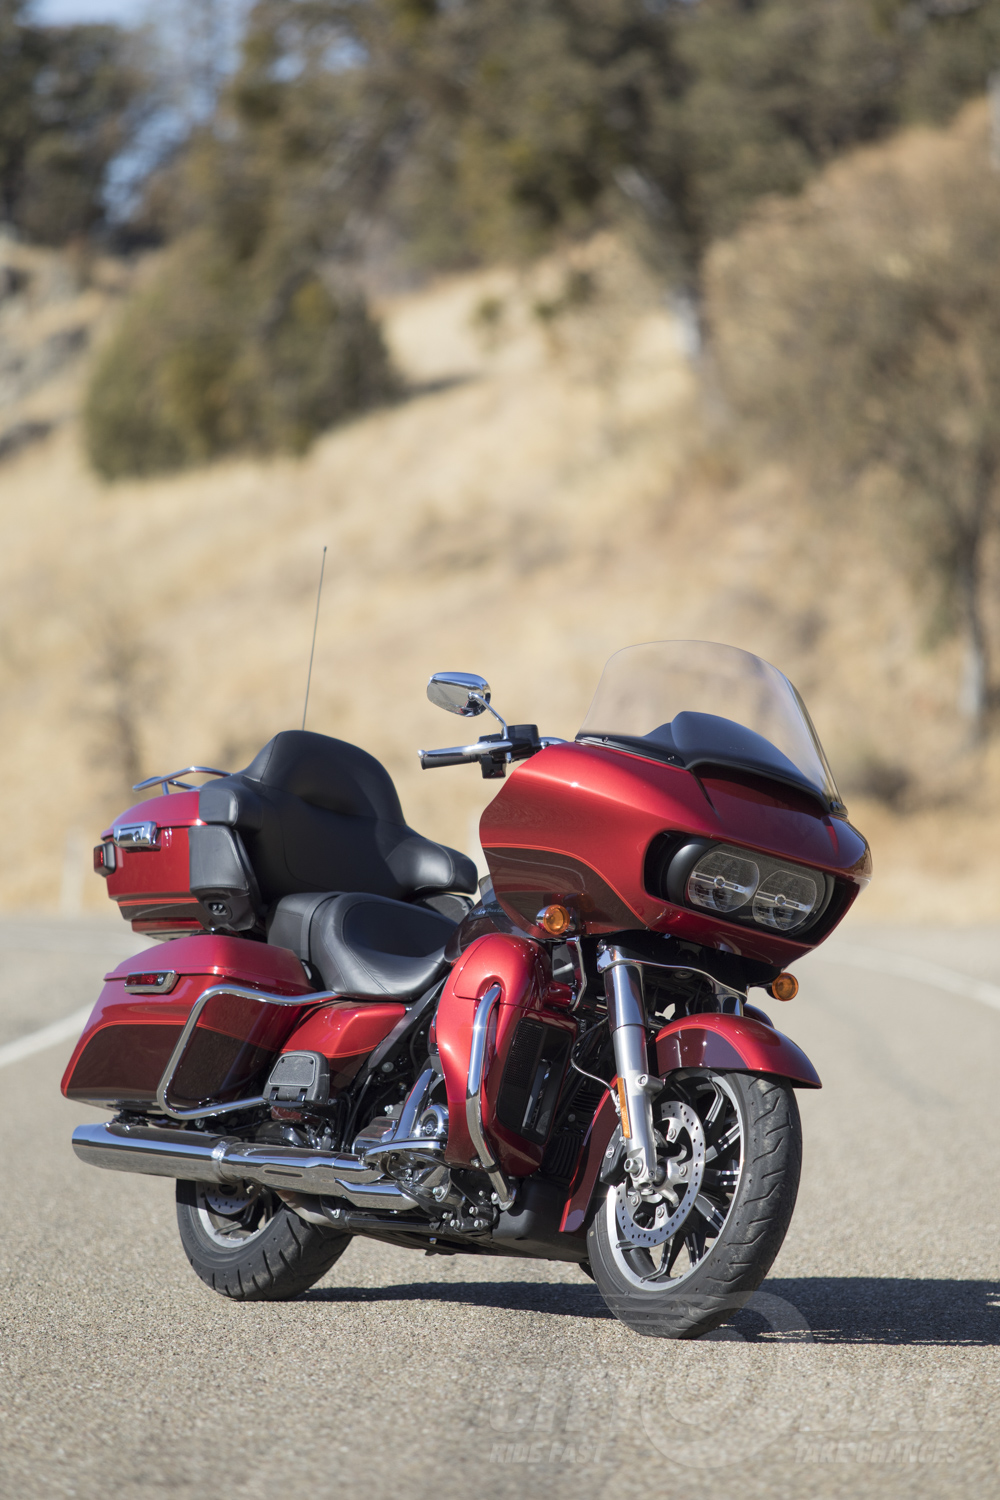 Project H-D Ultra: 2018 Harley-Davidson Road Glide Ultra | CityBike